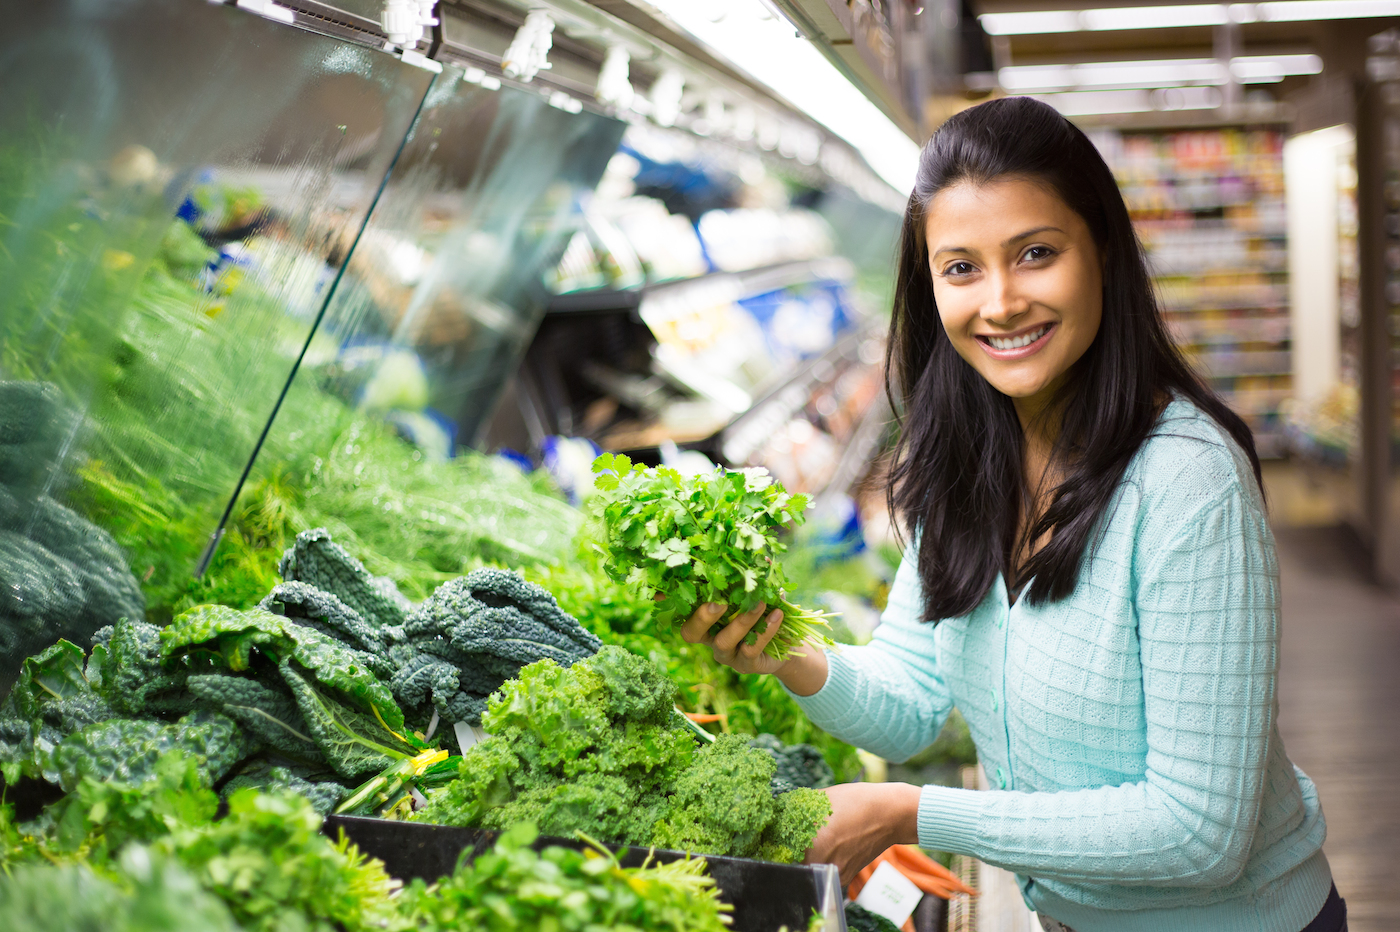 Woman choosing leafy greens at grocery store